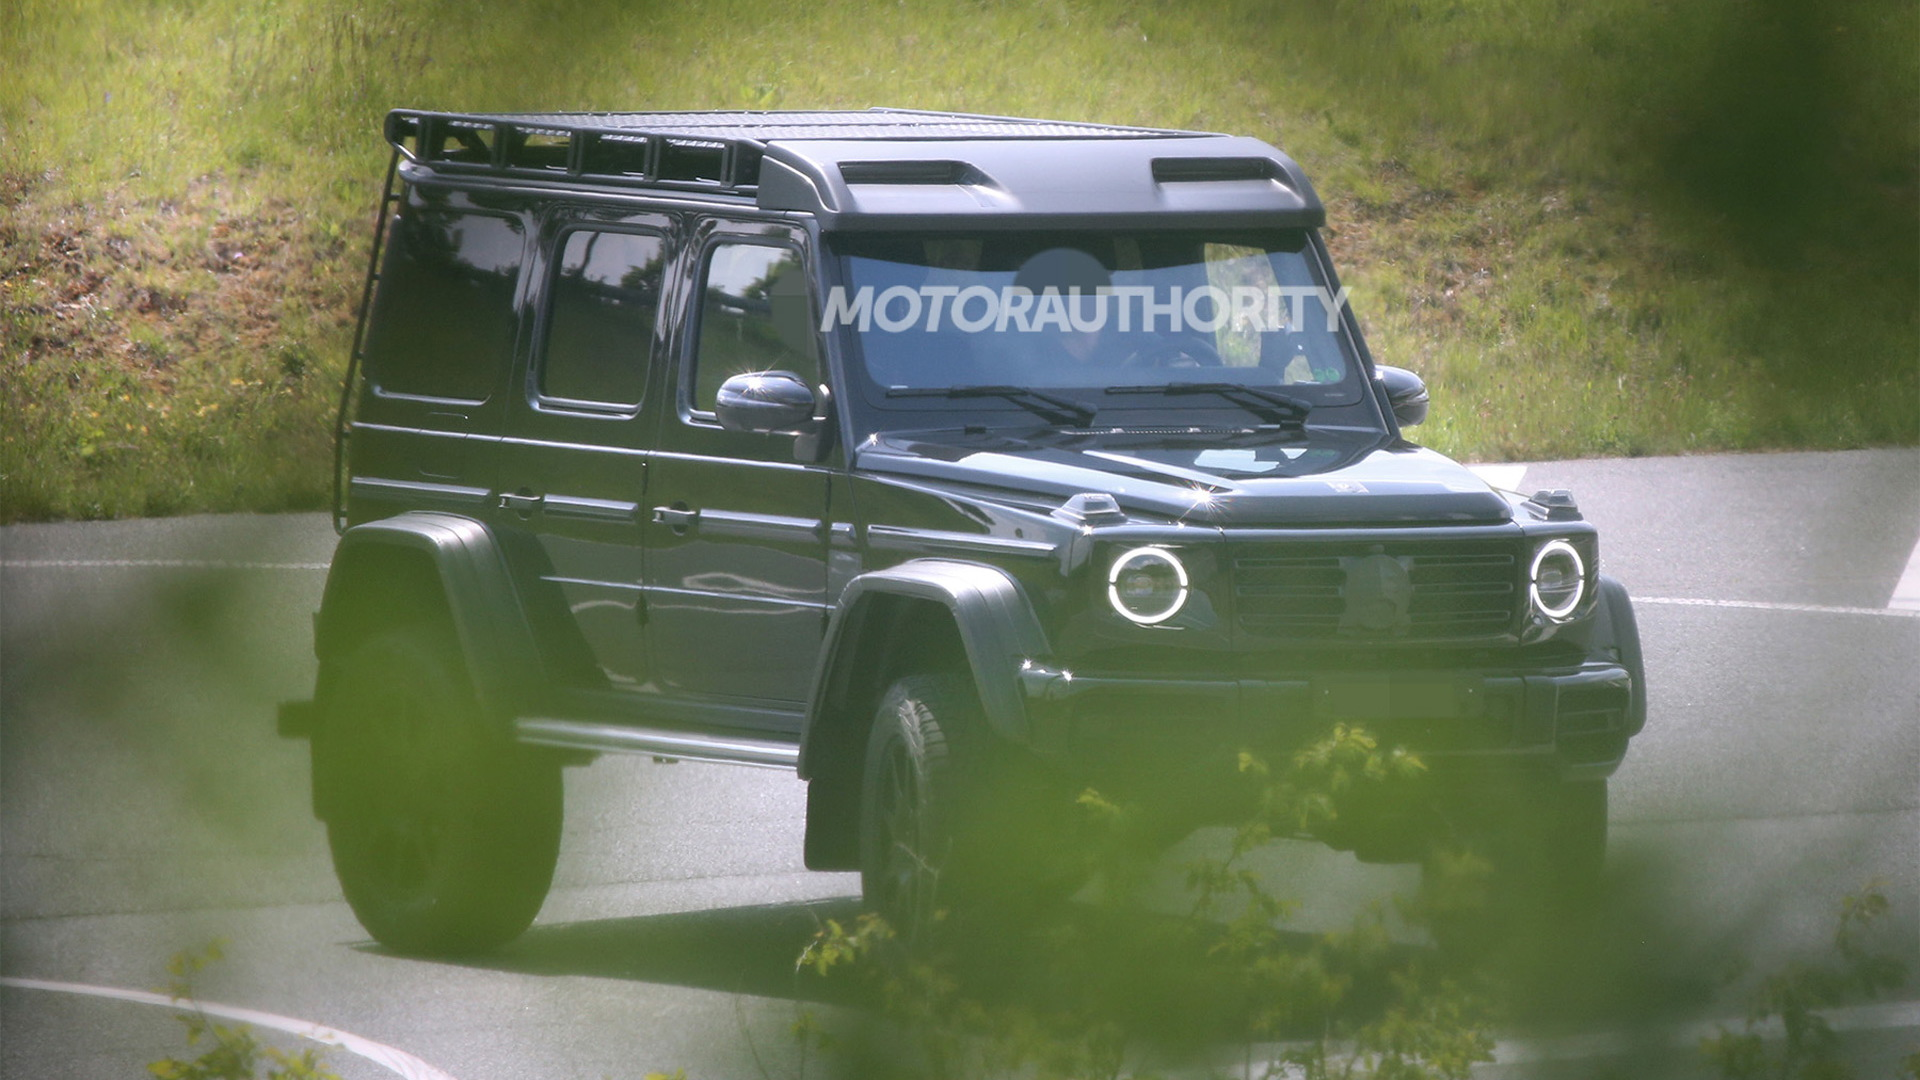 New Mercedes-Benz G550 4x4 Squared spy shots - Photo credit: S. Baldauf/SB-Medien